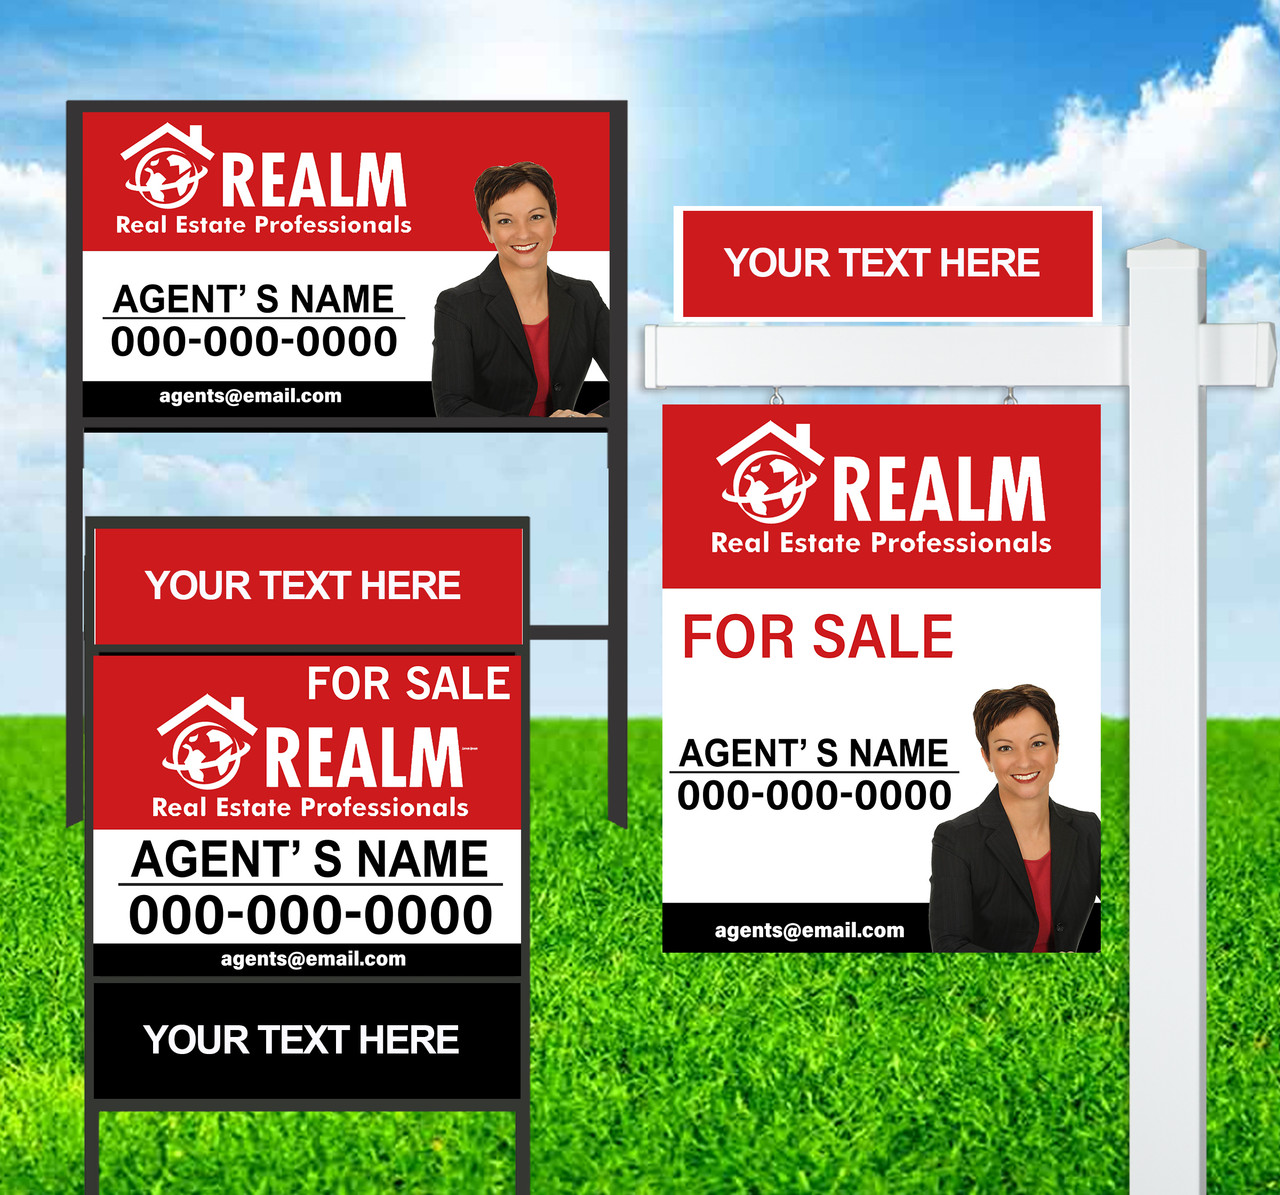 Realm Sign Units